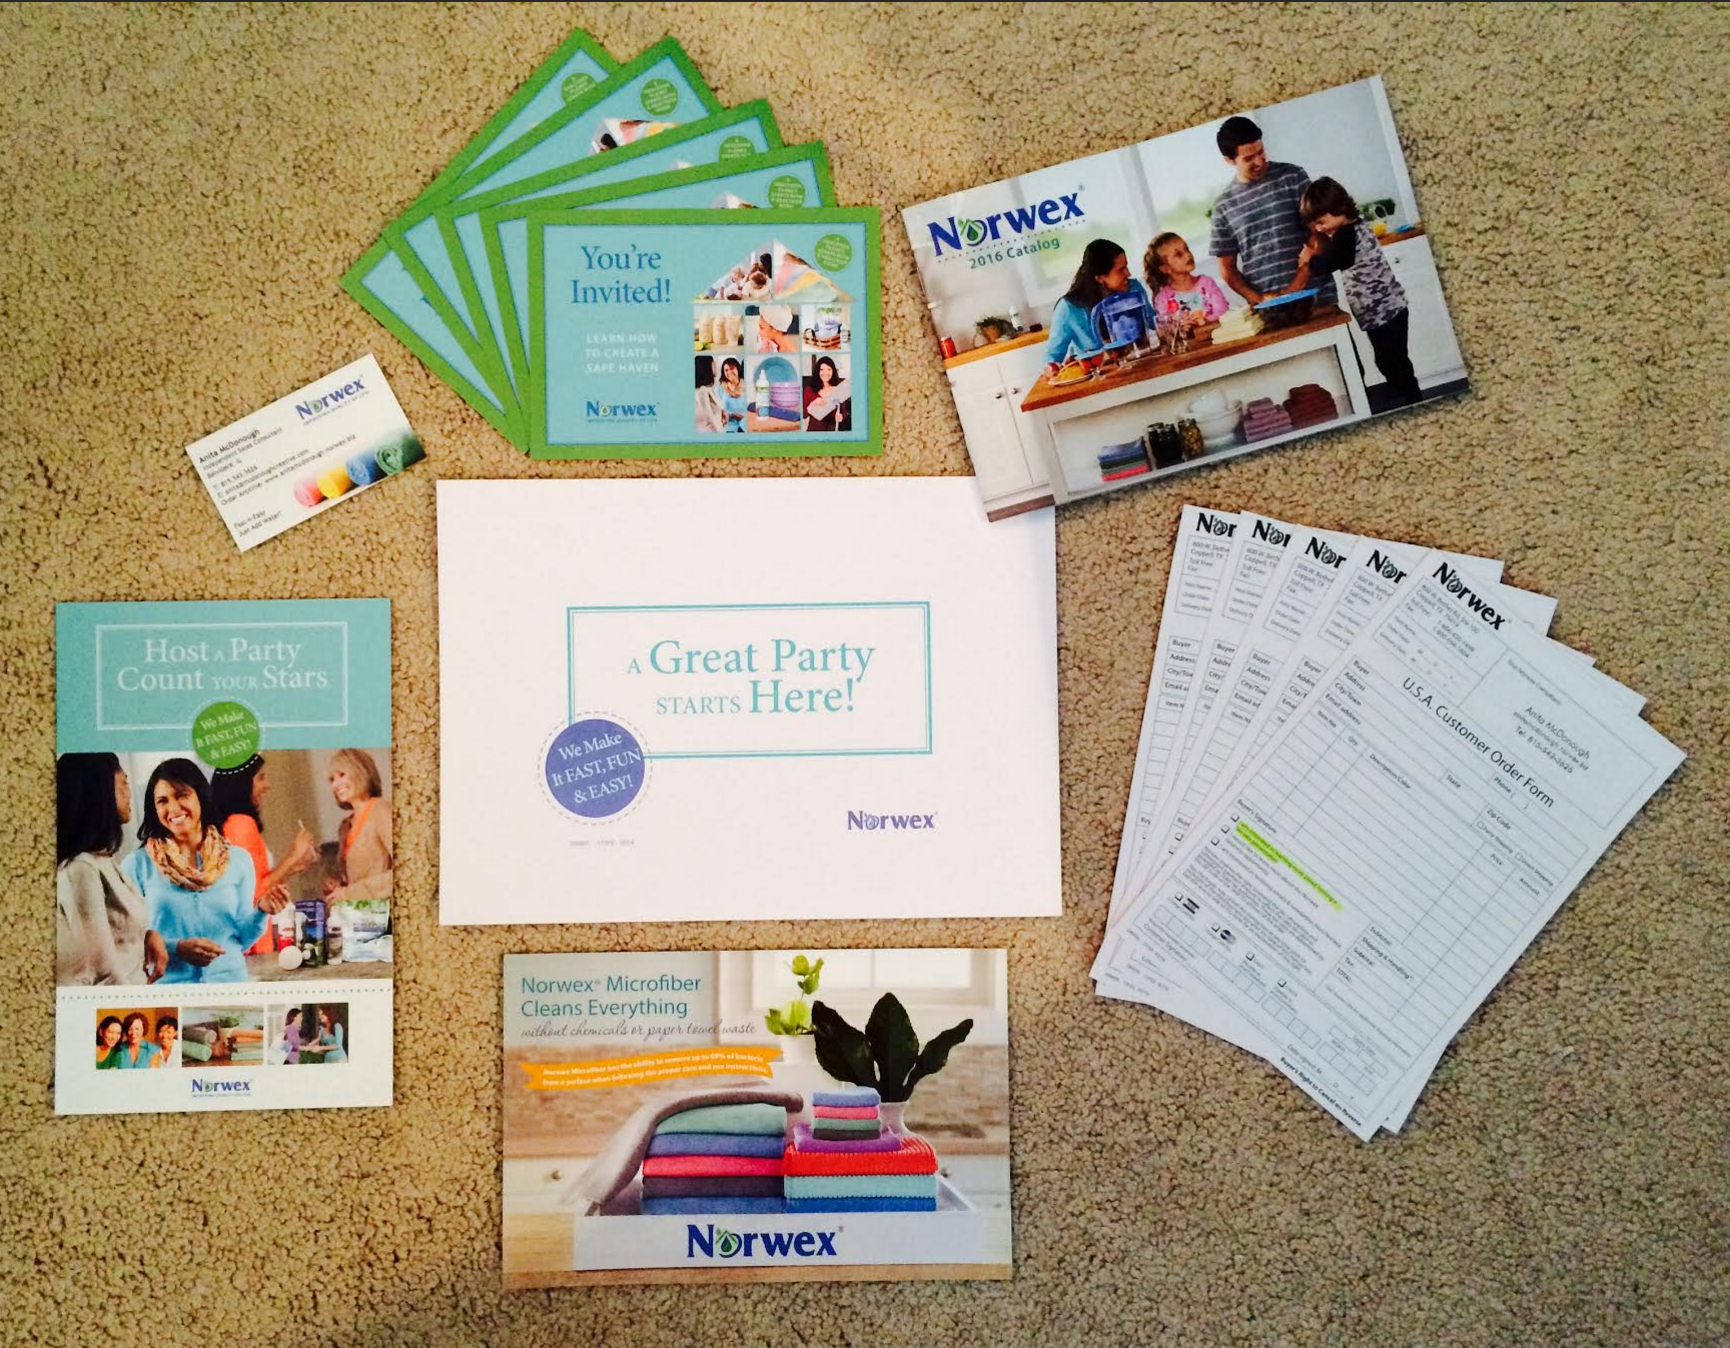 Protected: Hostess Packets and Supplies for your Norwex Party